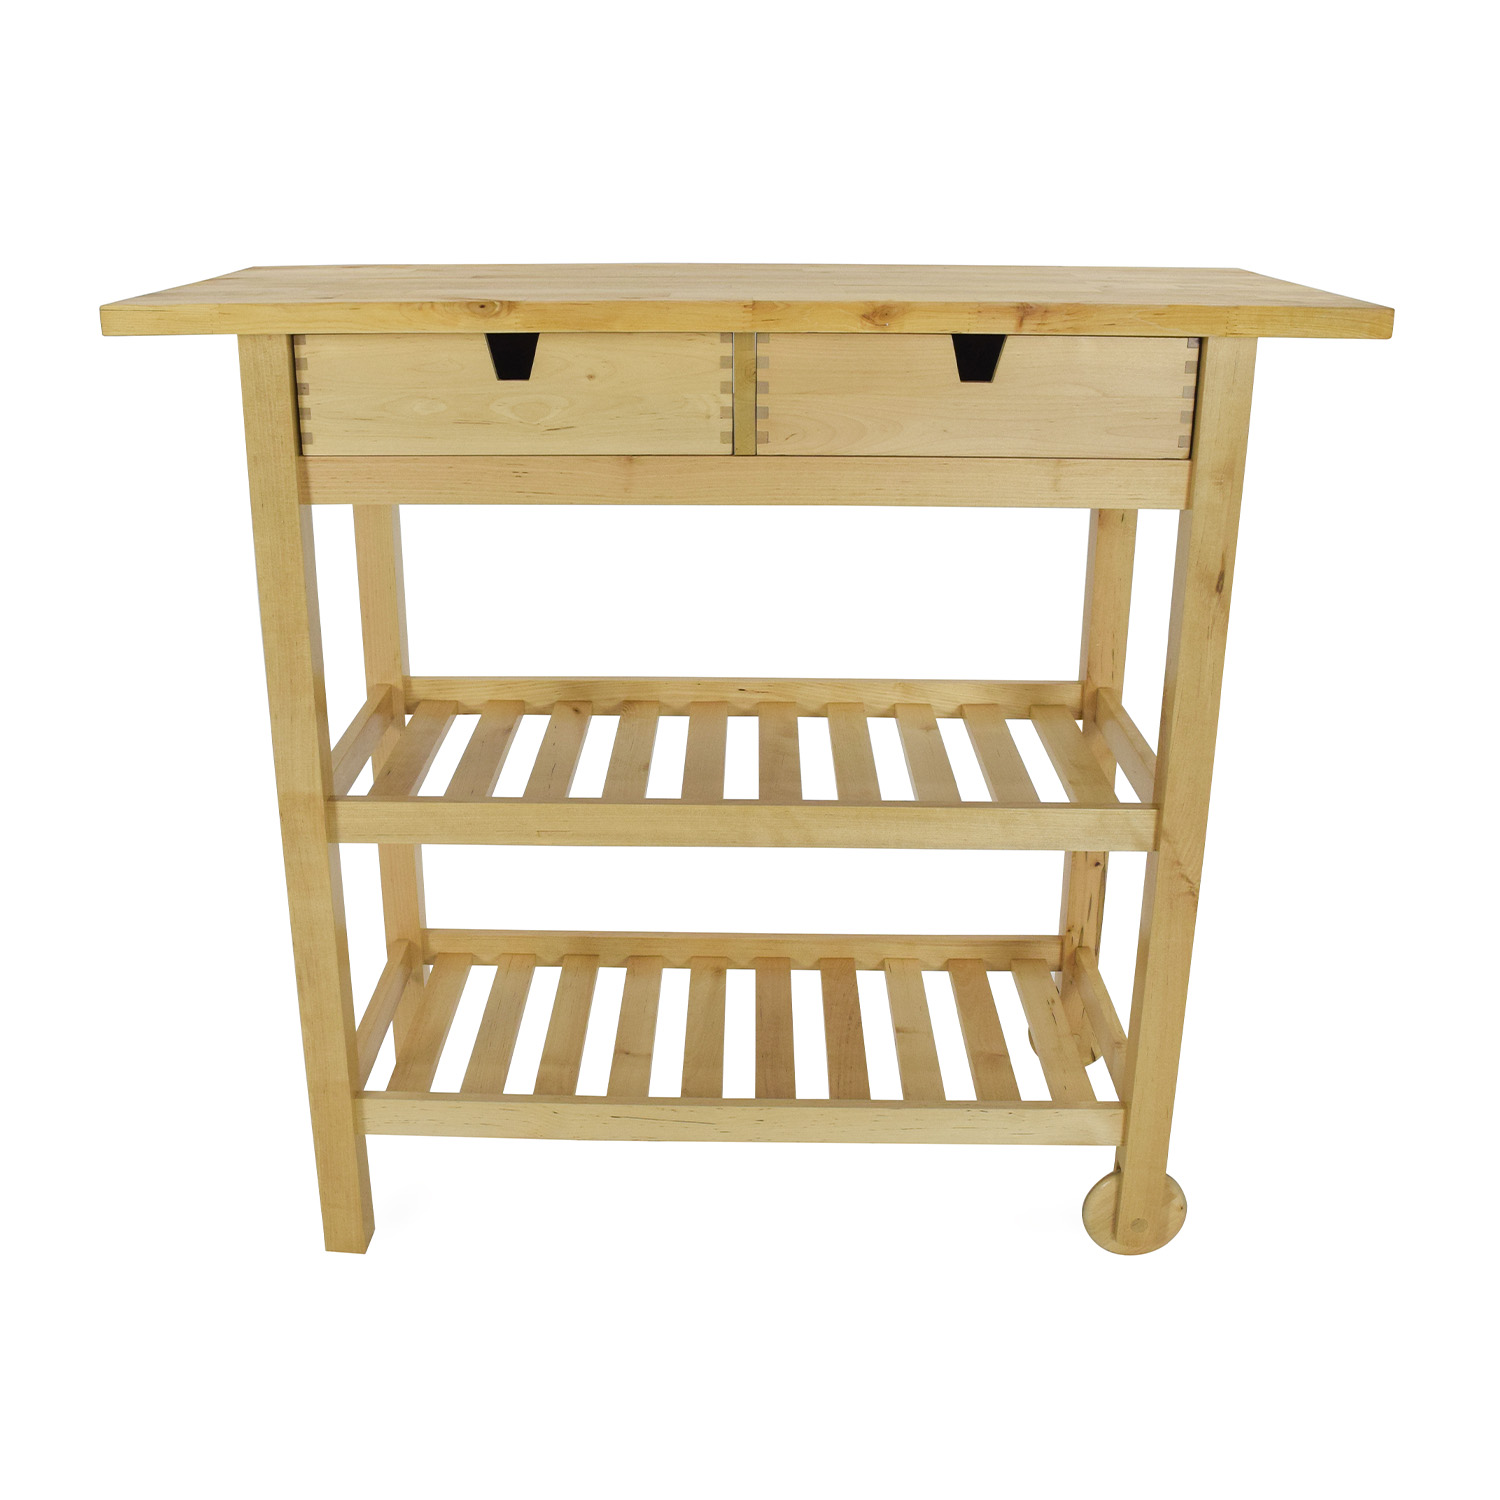 56% off - ikea forhoja kitchen cart / tables